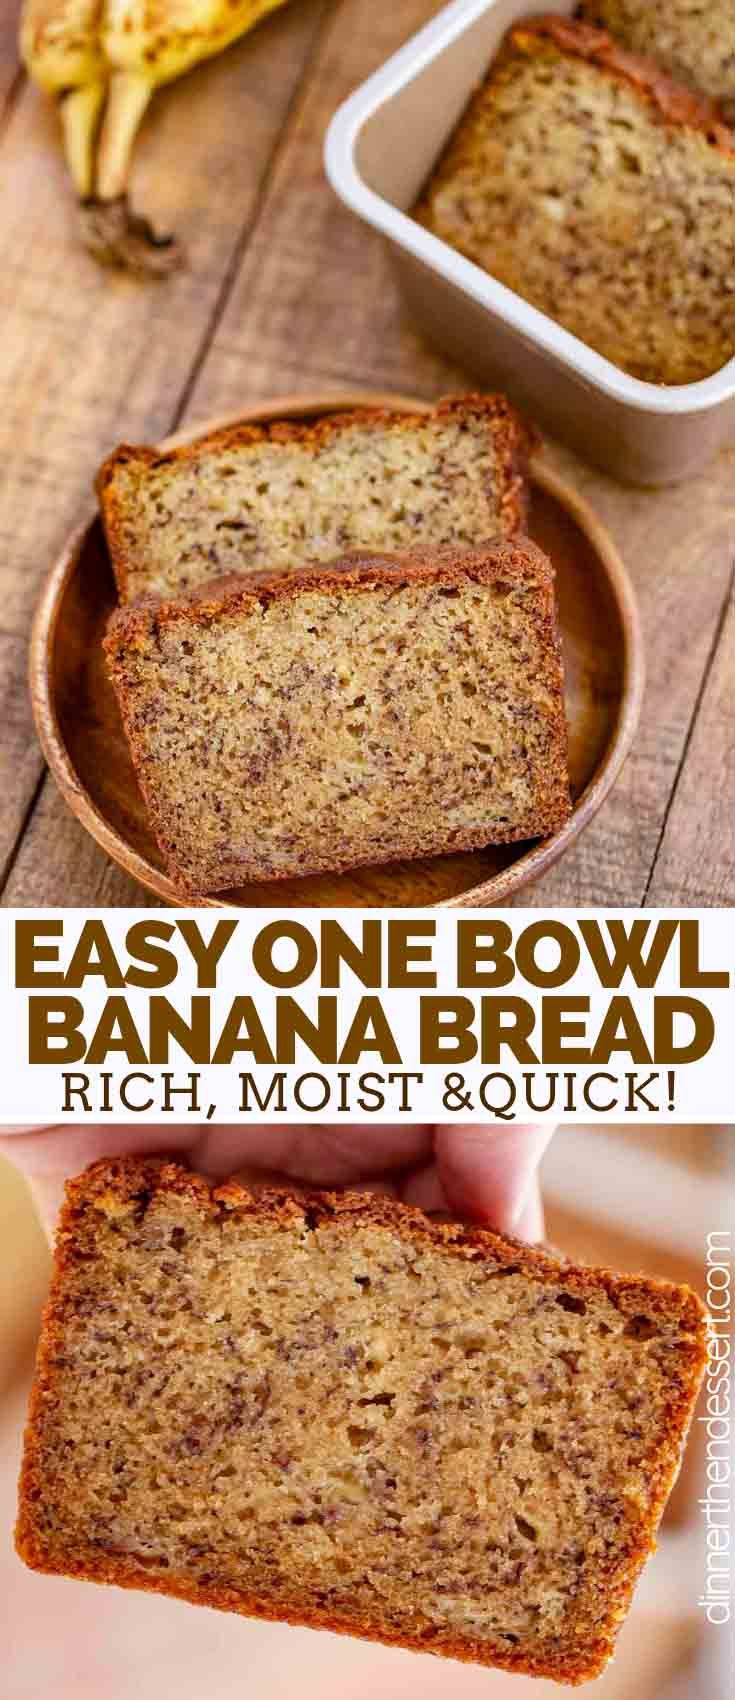 Easy Banana Bread Made With Ripe Bananas And Sour Cream Is The Perfect Combo Of Moist And Fluffy Easy Banana Bread Easy Banana Bread Recipe Sour Cream Recipes